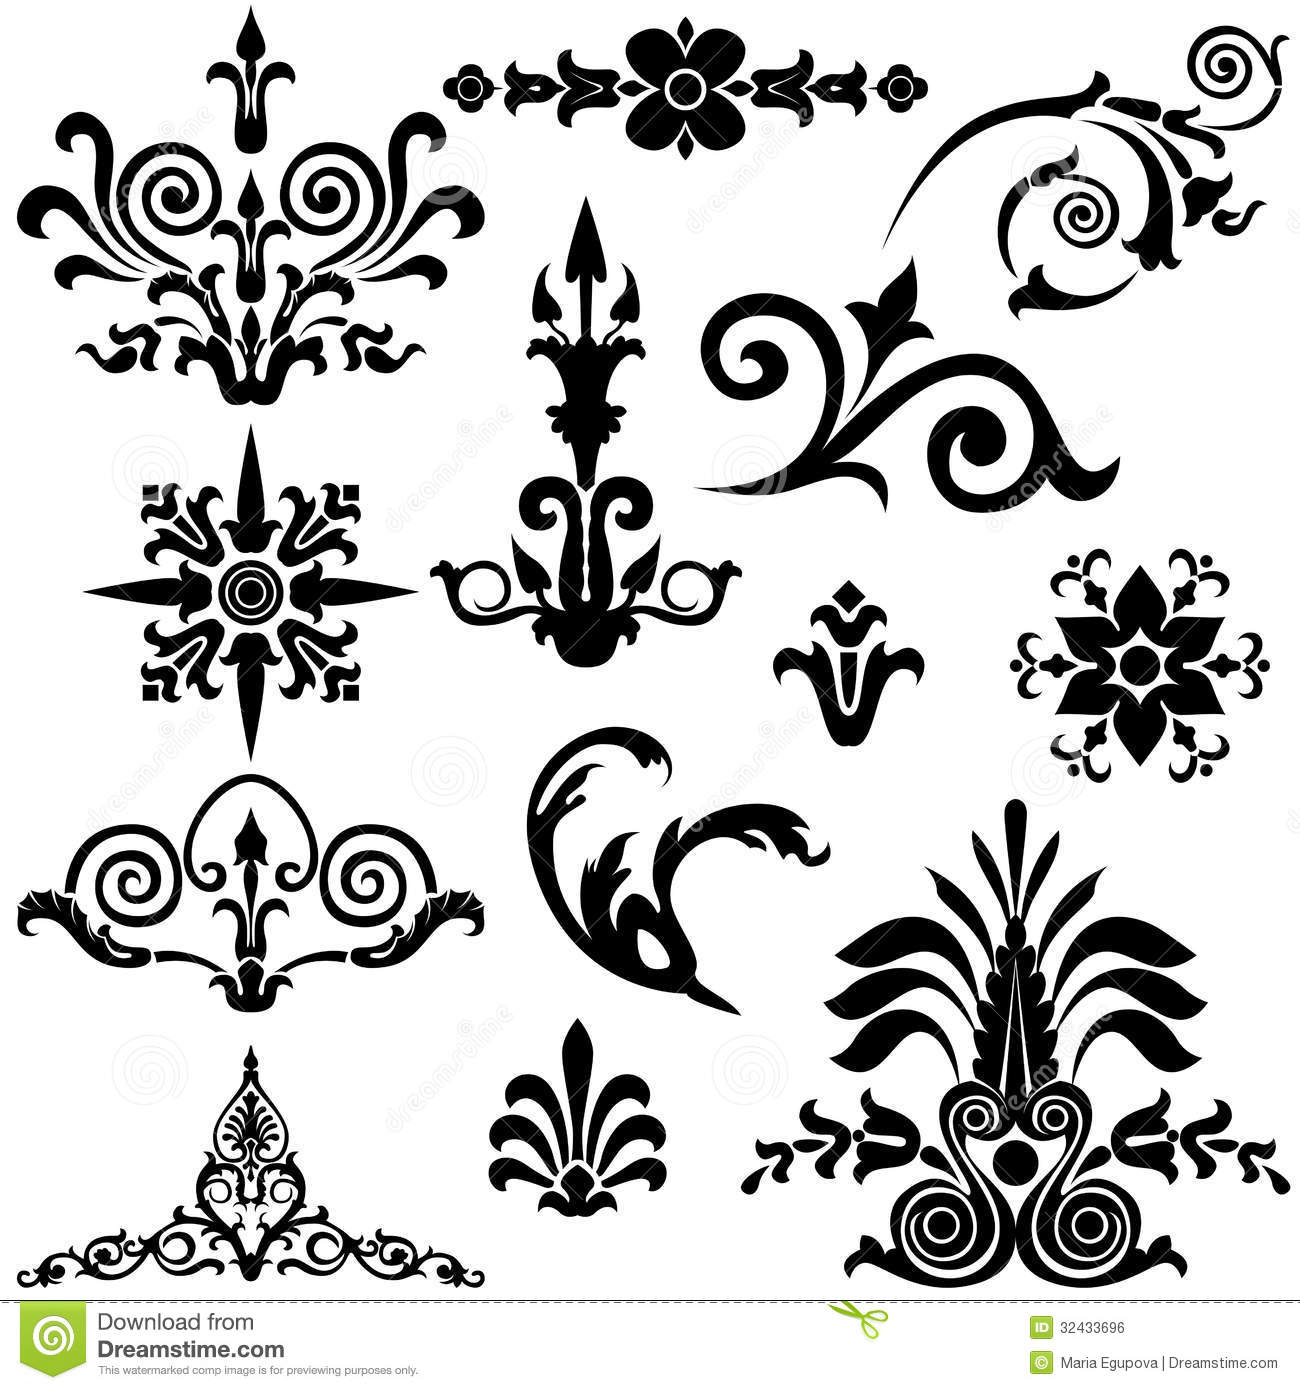 download design clip art vector - photo #39